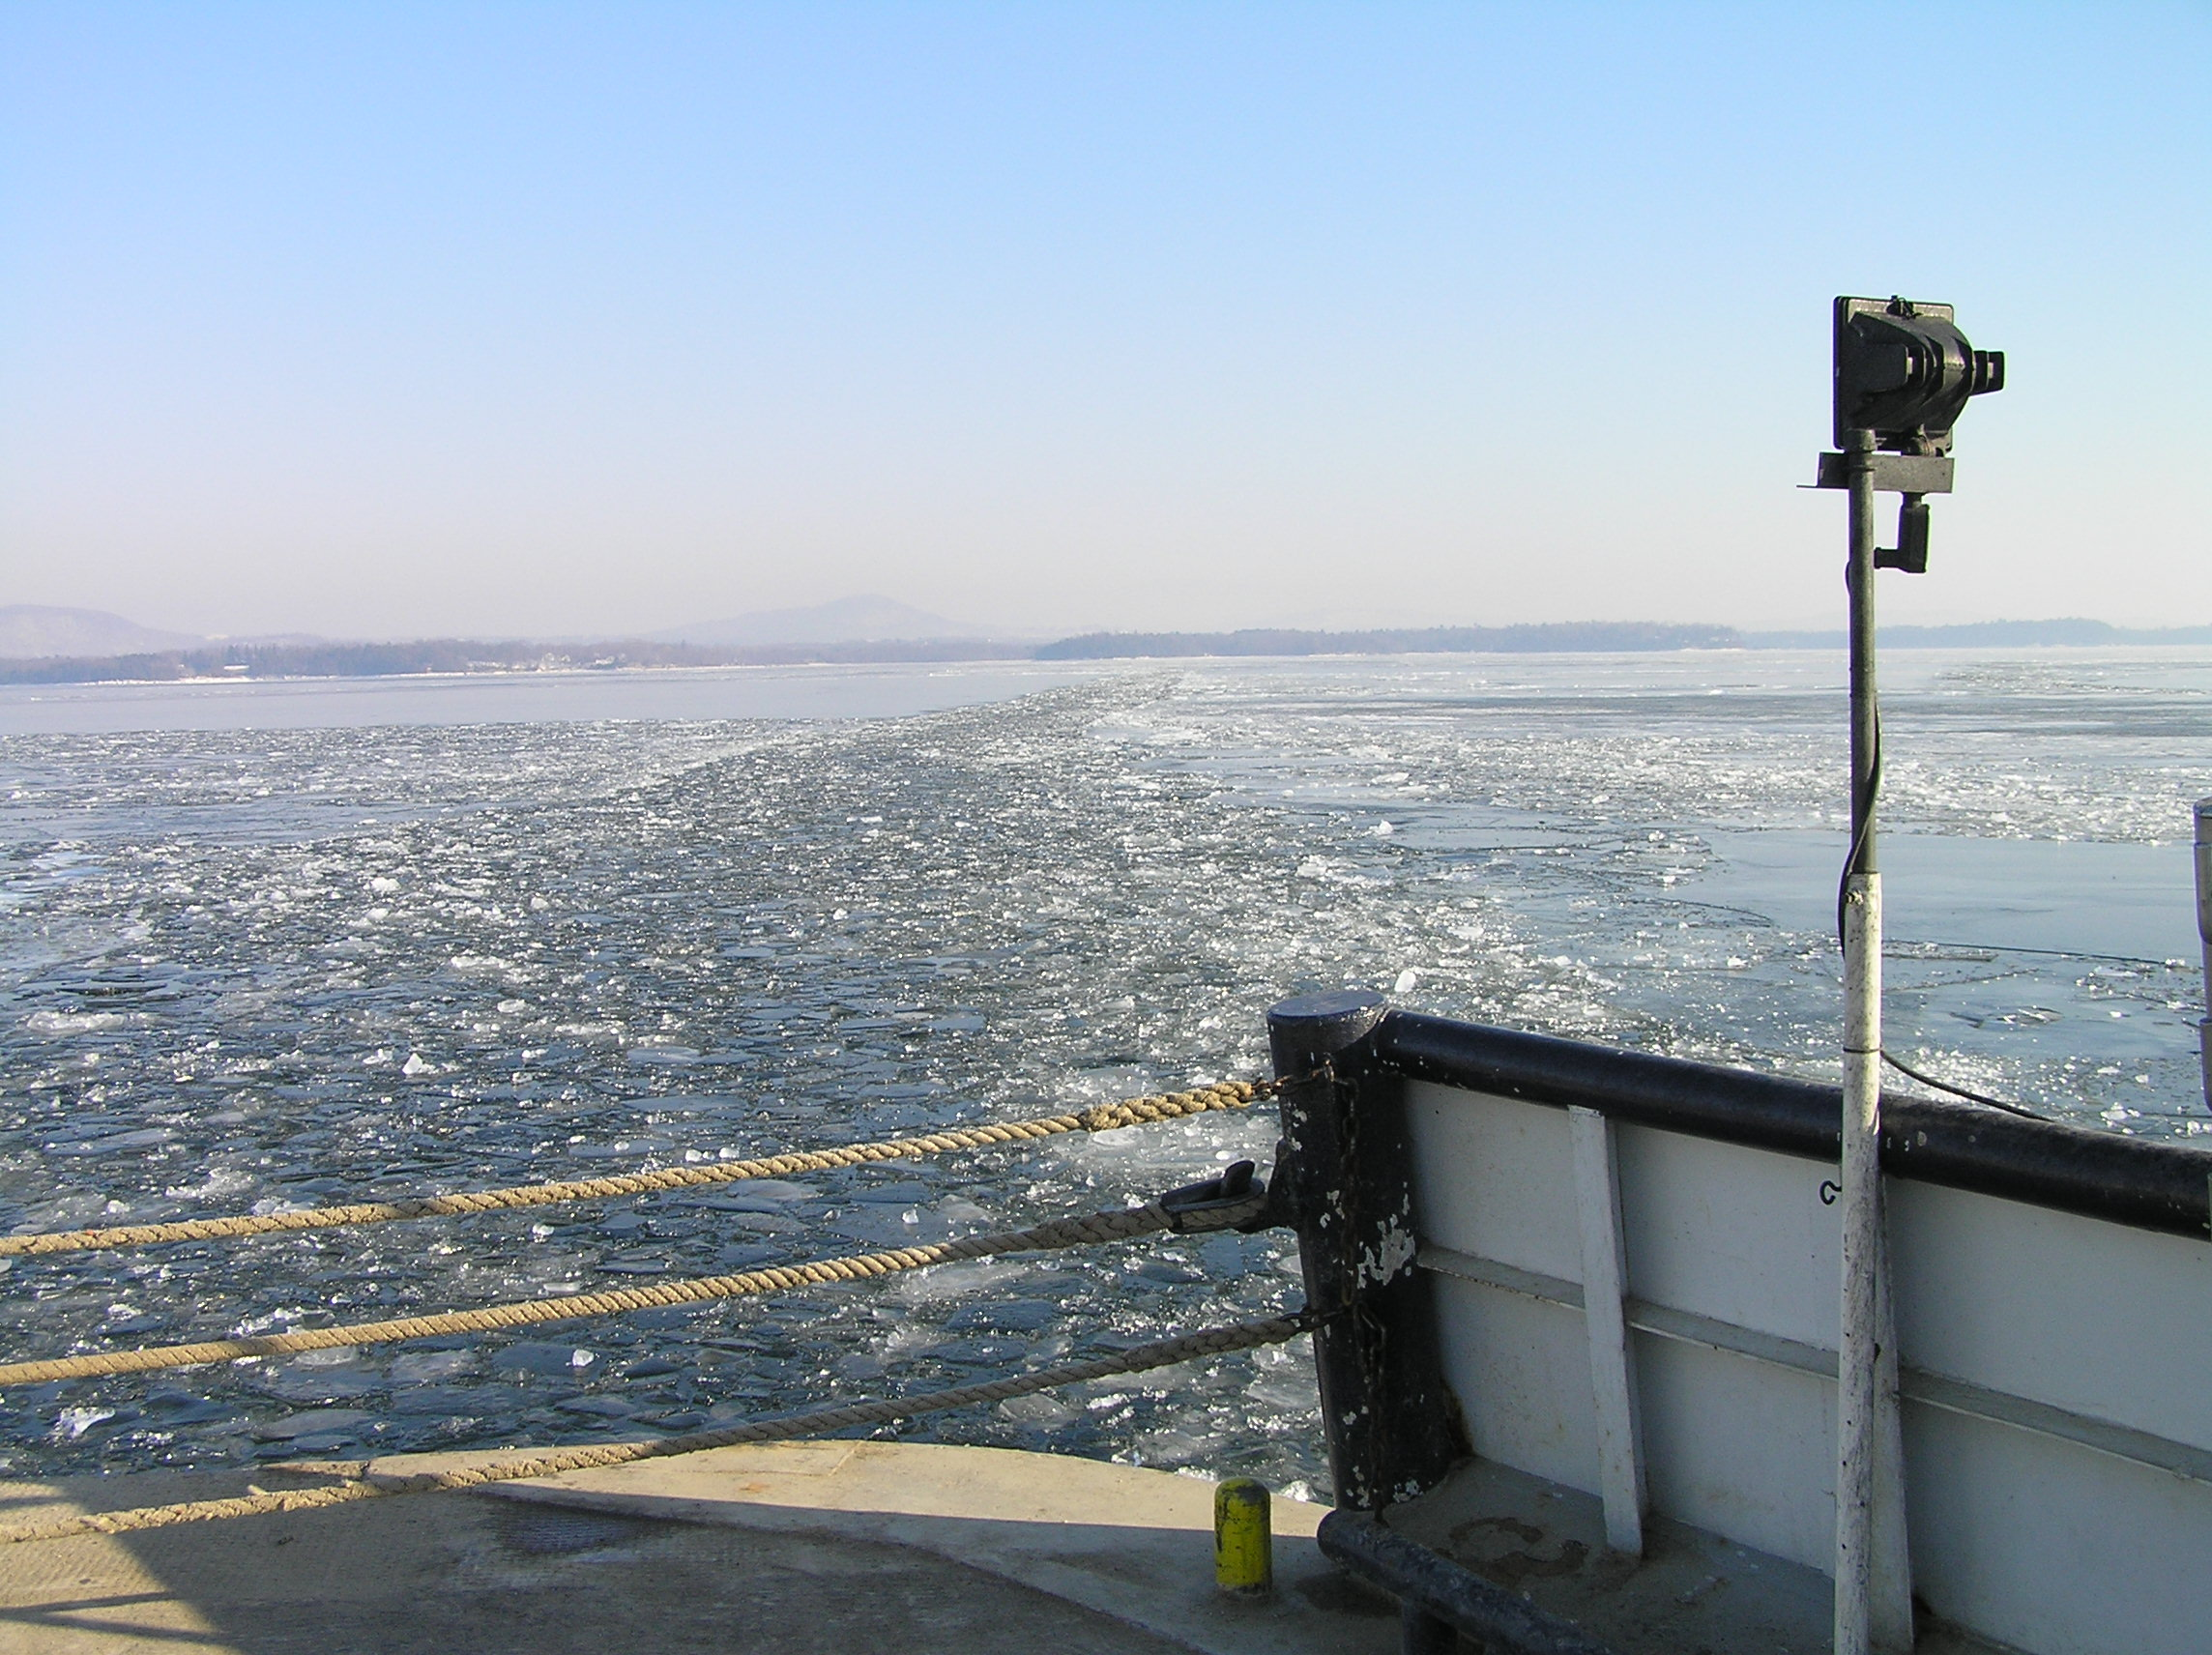 Lake Champlain, which was included in this study, has experienced long-term increasing chloride concentrations. Photo by T444vt